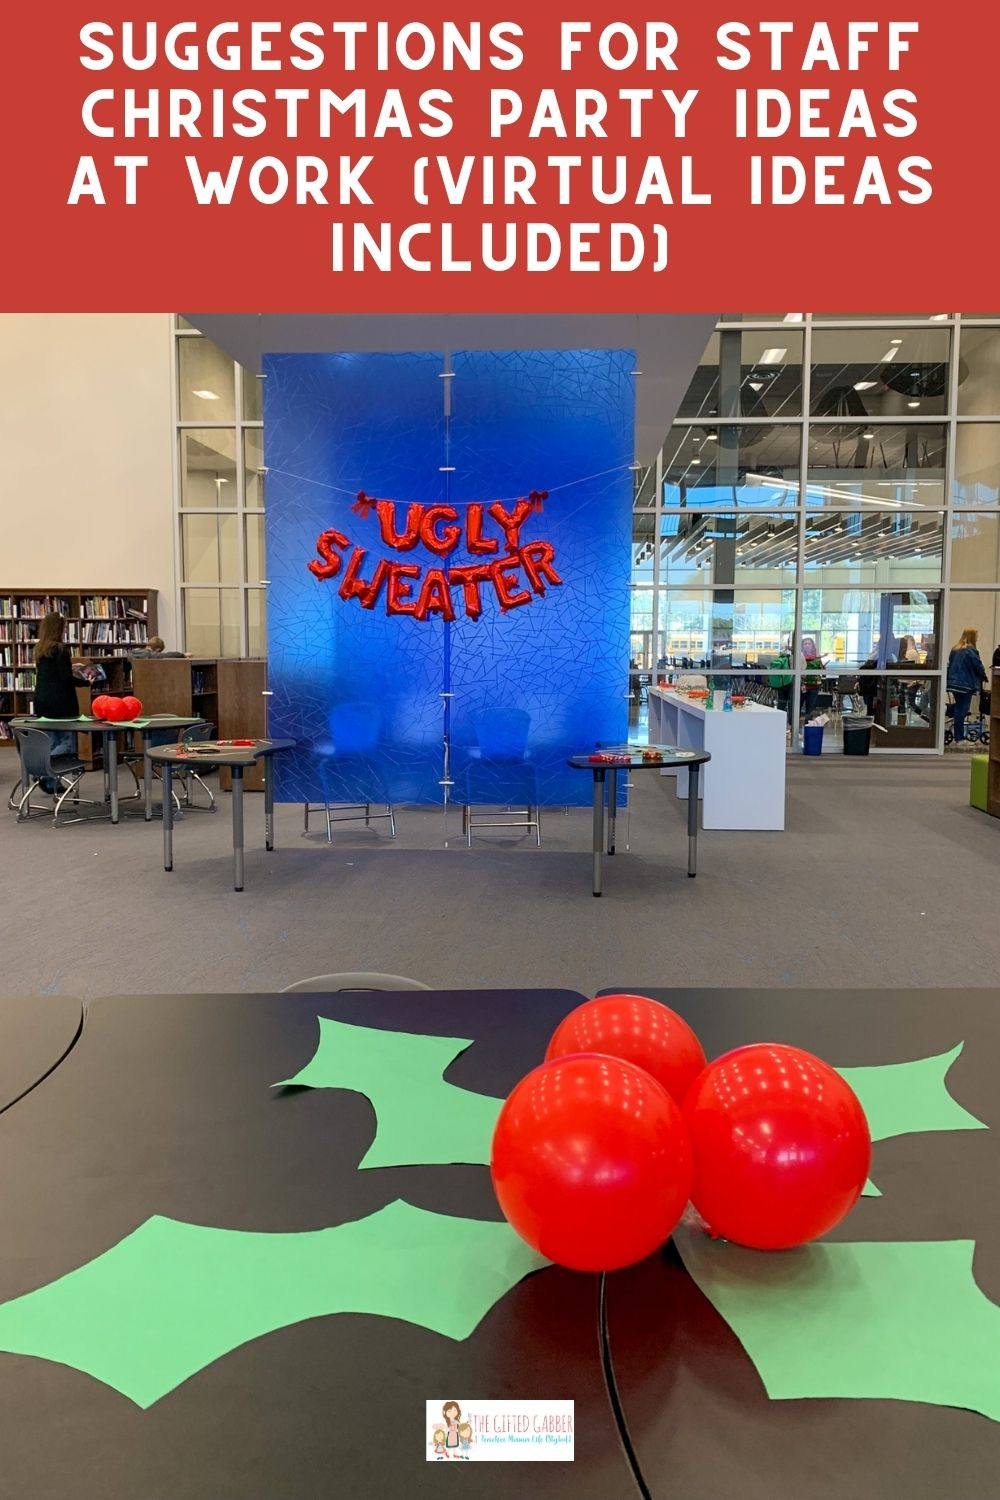 Christmas Party Ideas At Work With Ideas For A Virtual Christmas Party